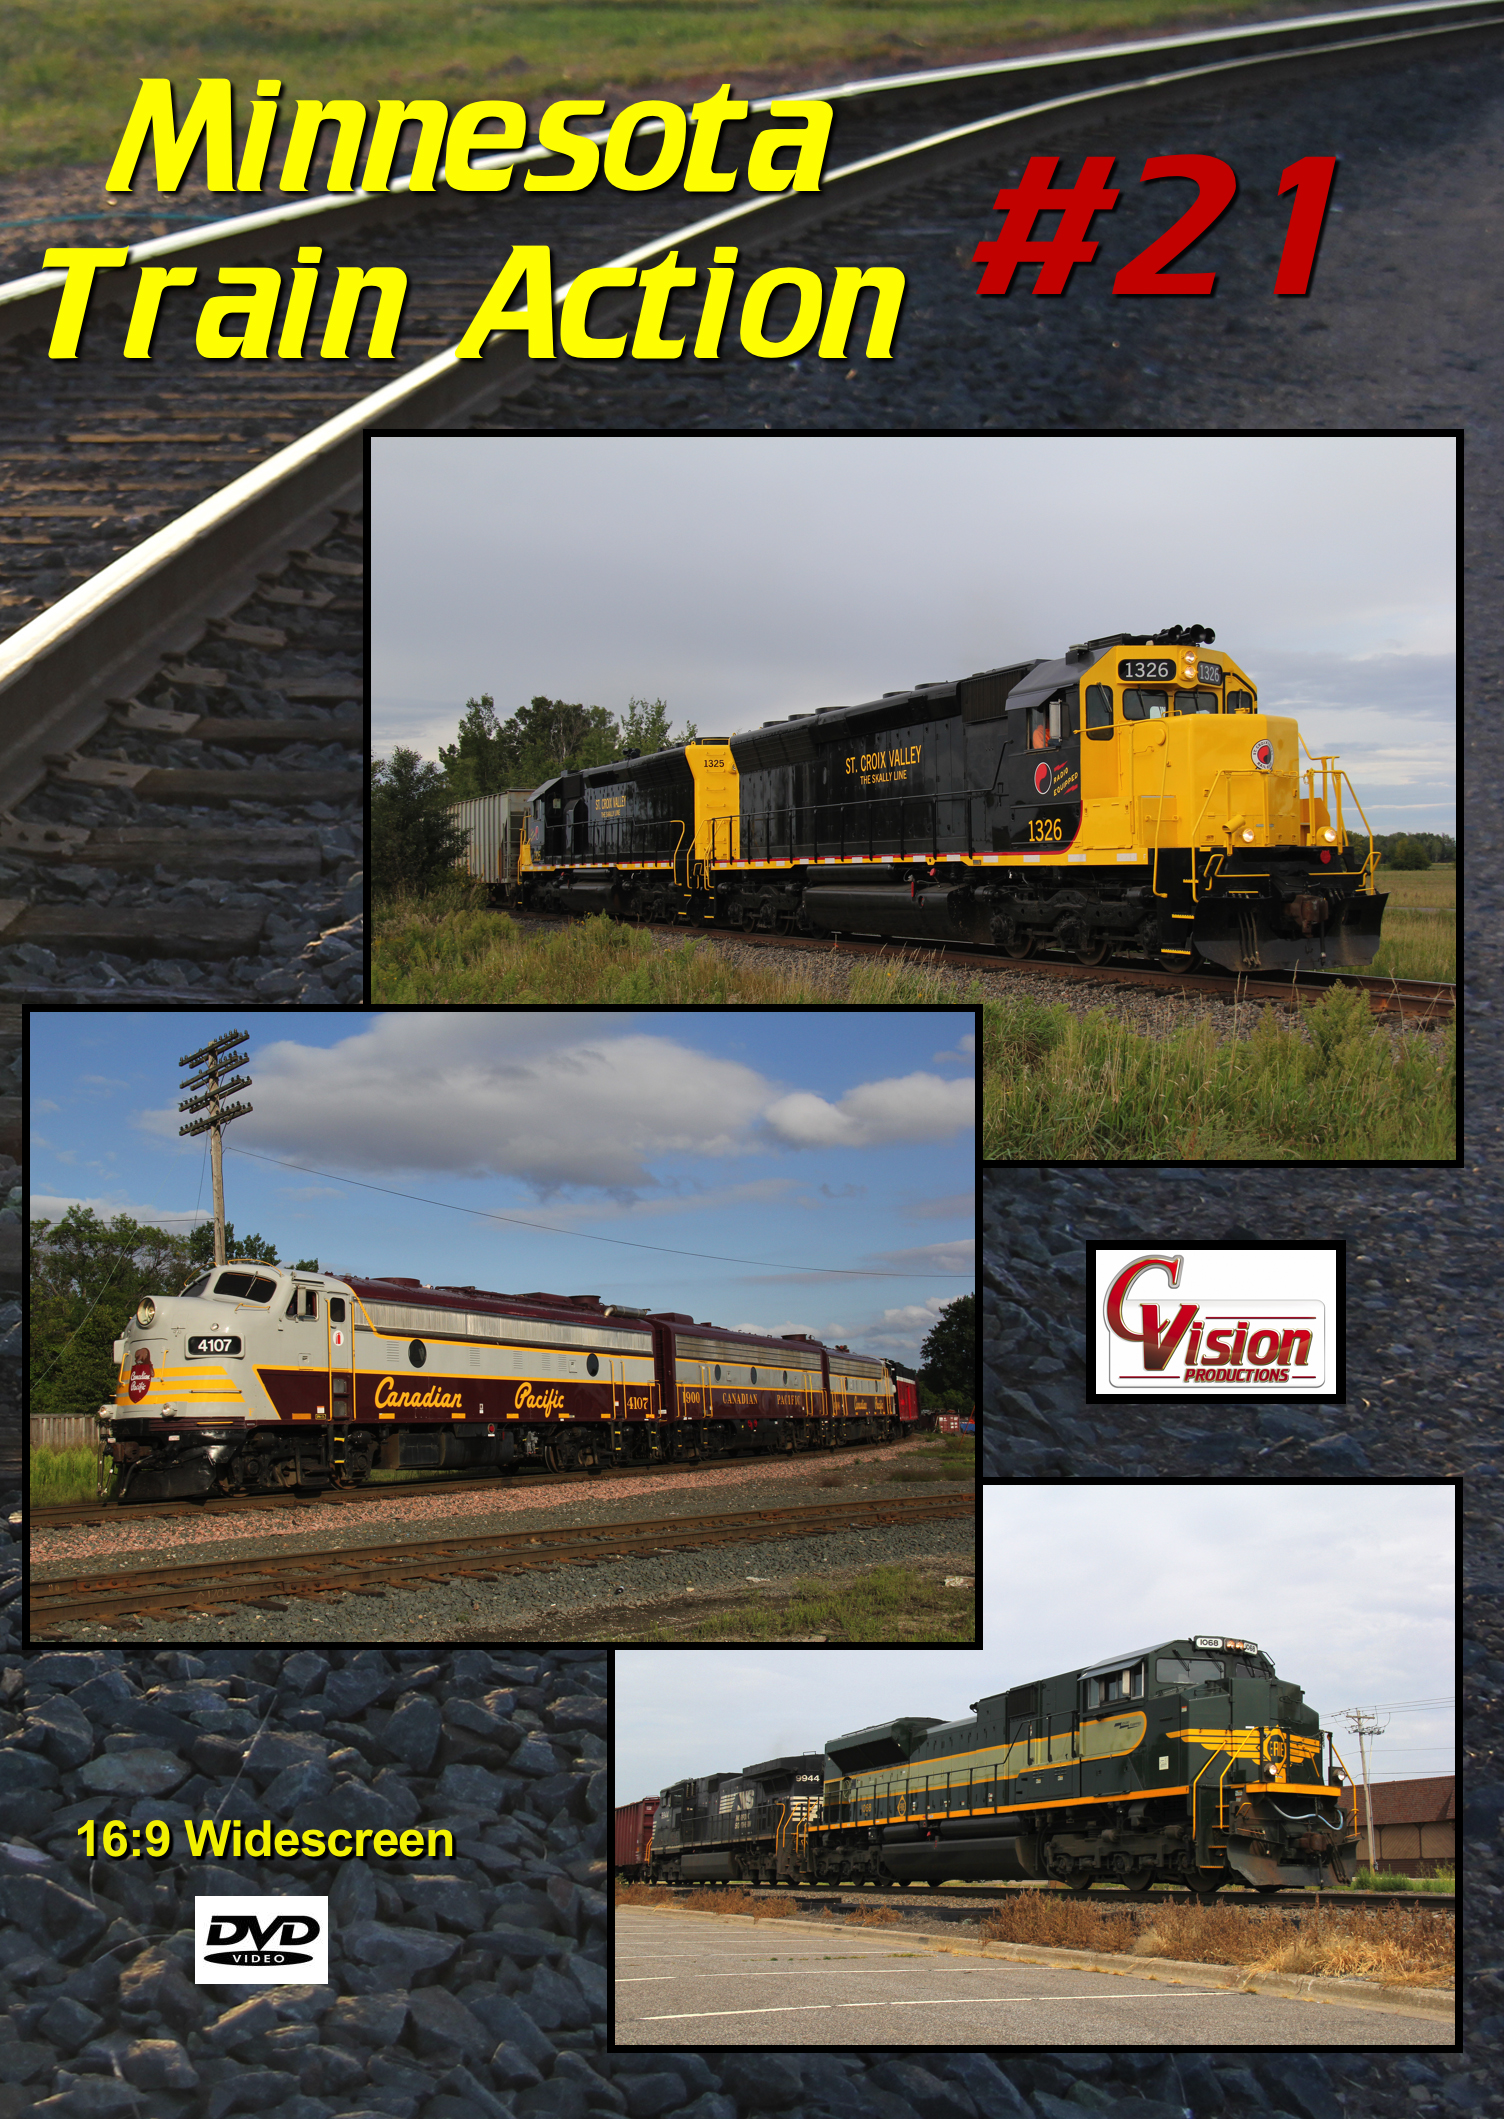 Minnesota Train Action Number 21 DVD C Vision Productions MTA21DVD